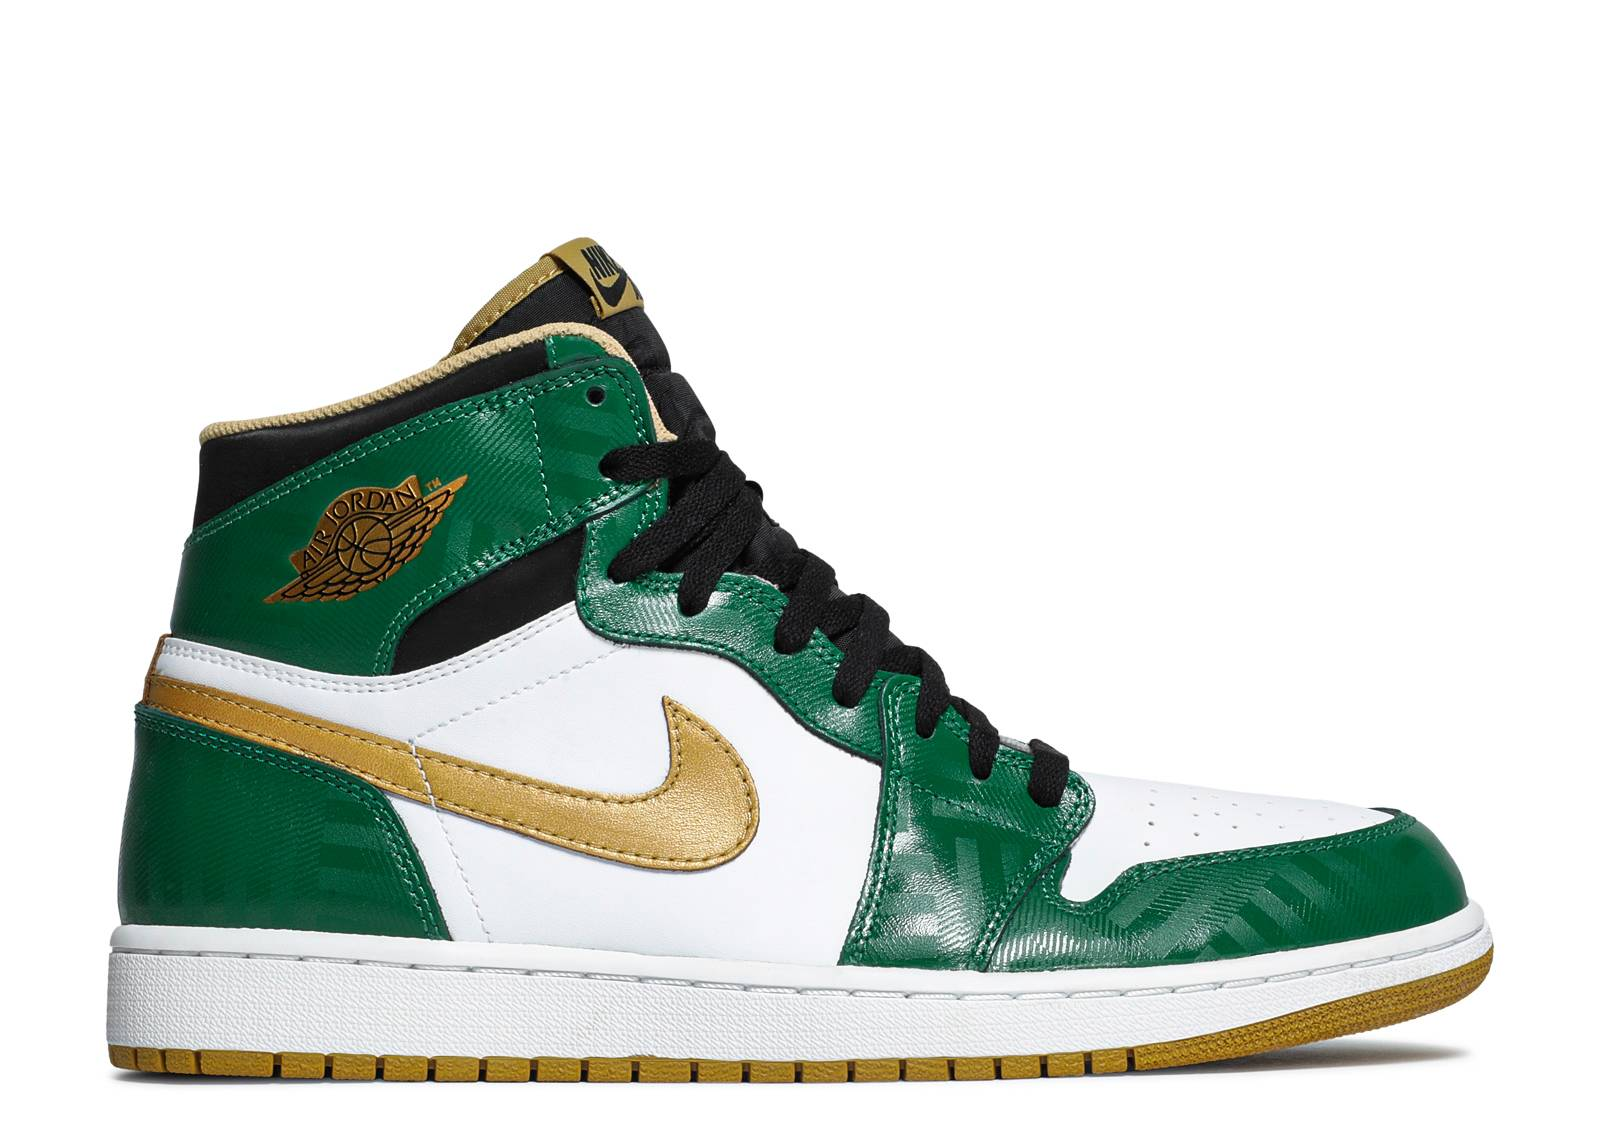 new photos closer at exquisite design Air Jordan 1 Retro High OG 'Celtics'